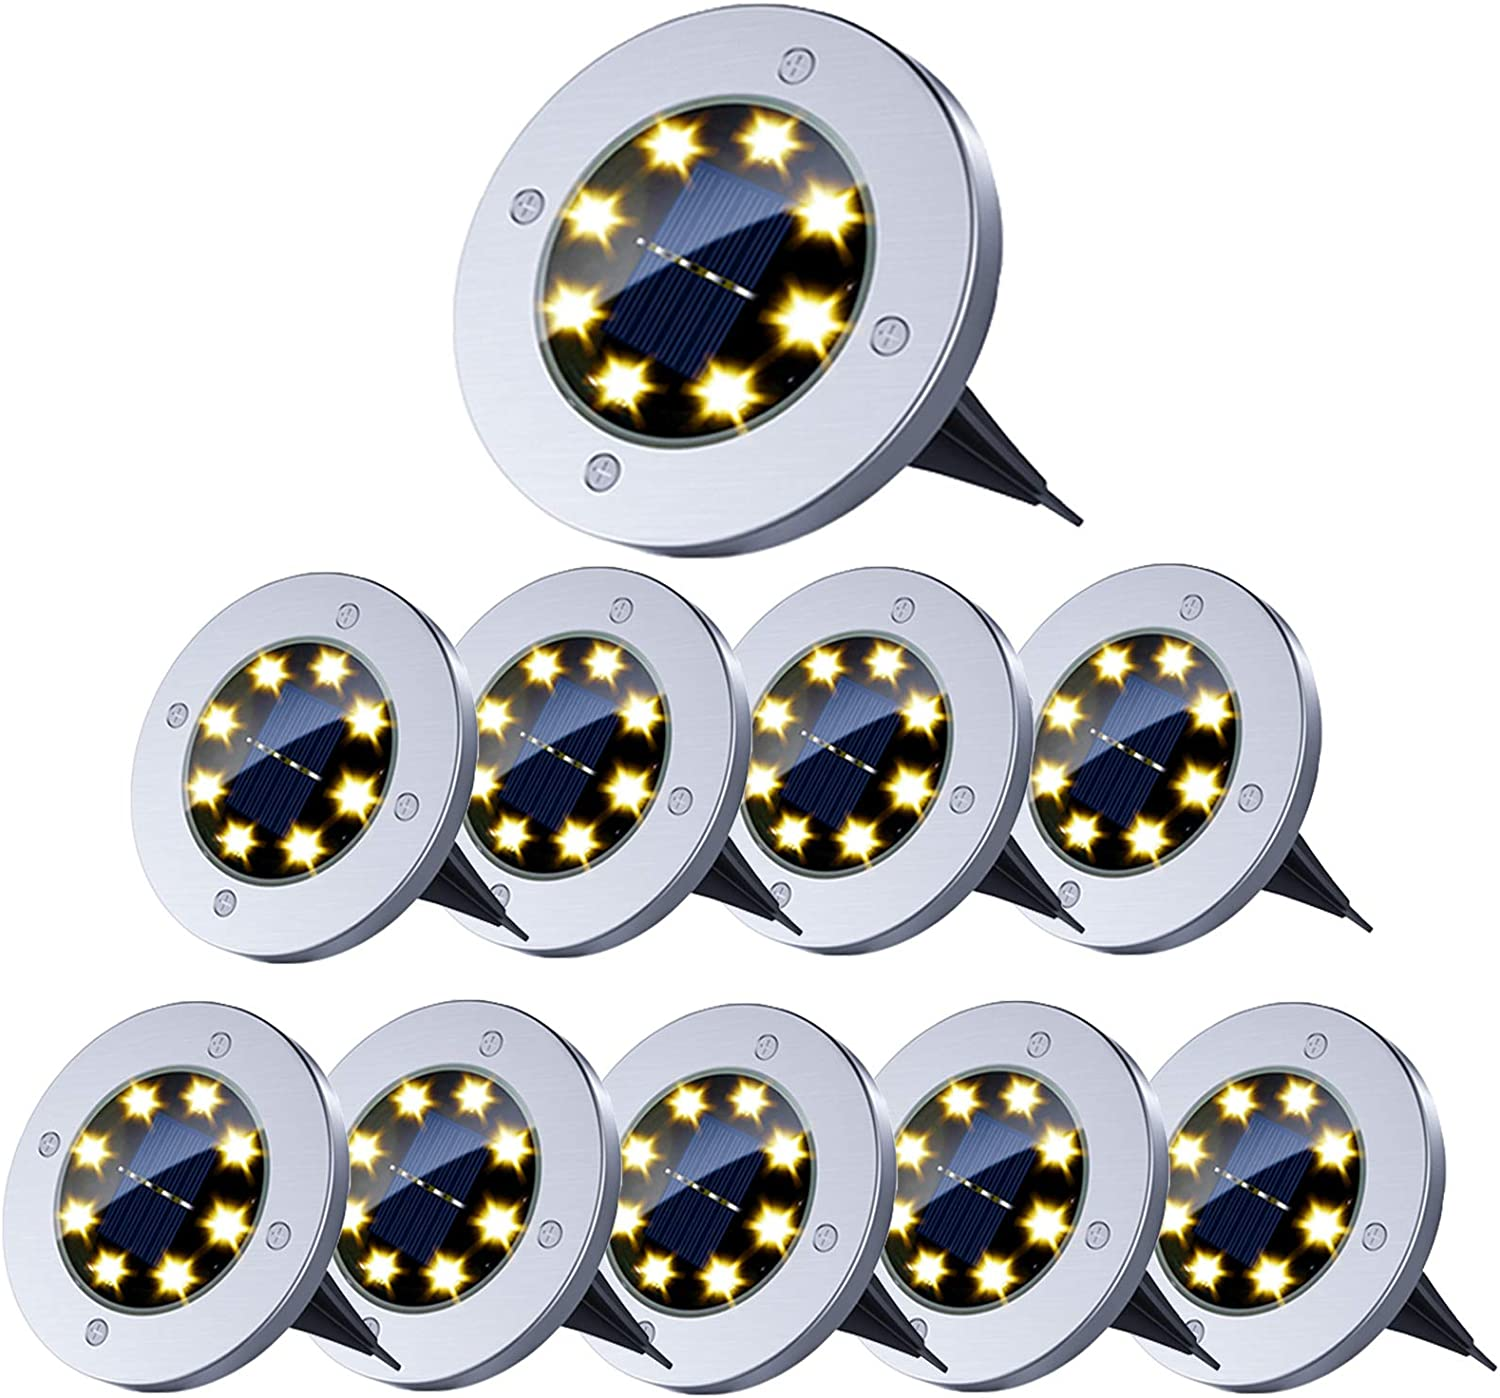 Solar Ground Lights,8 LED Solar Garden Lights Outdoor Waterproof In-Ground Lights Landscape Lights for Patio Pathway Lawn Driveway Walkway (10 Packs Warm White)